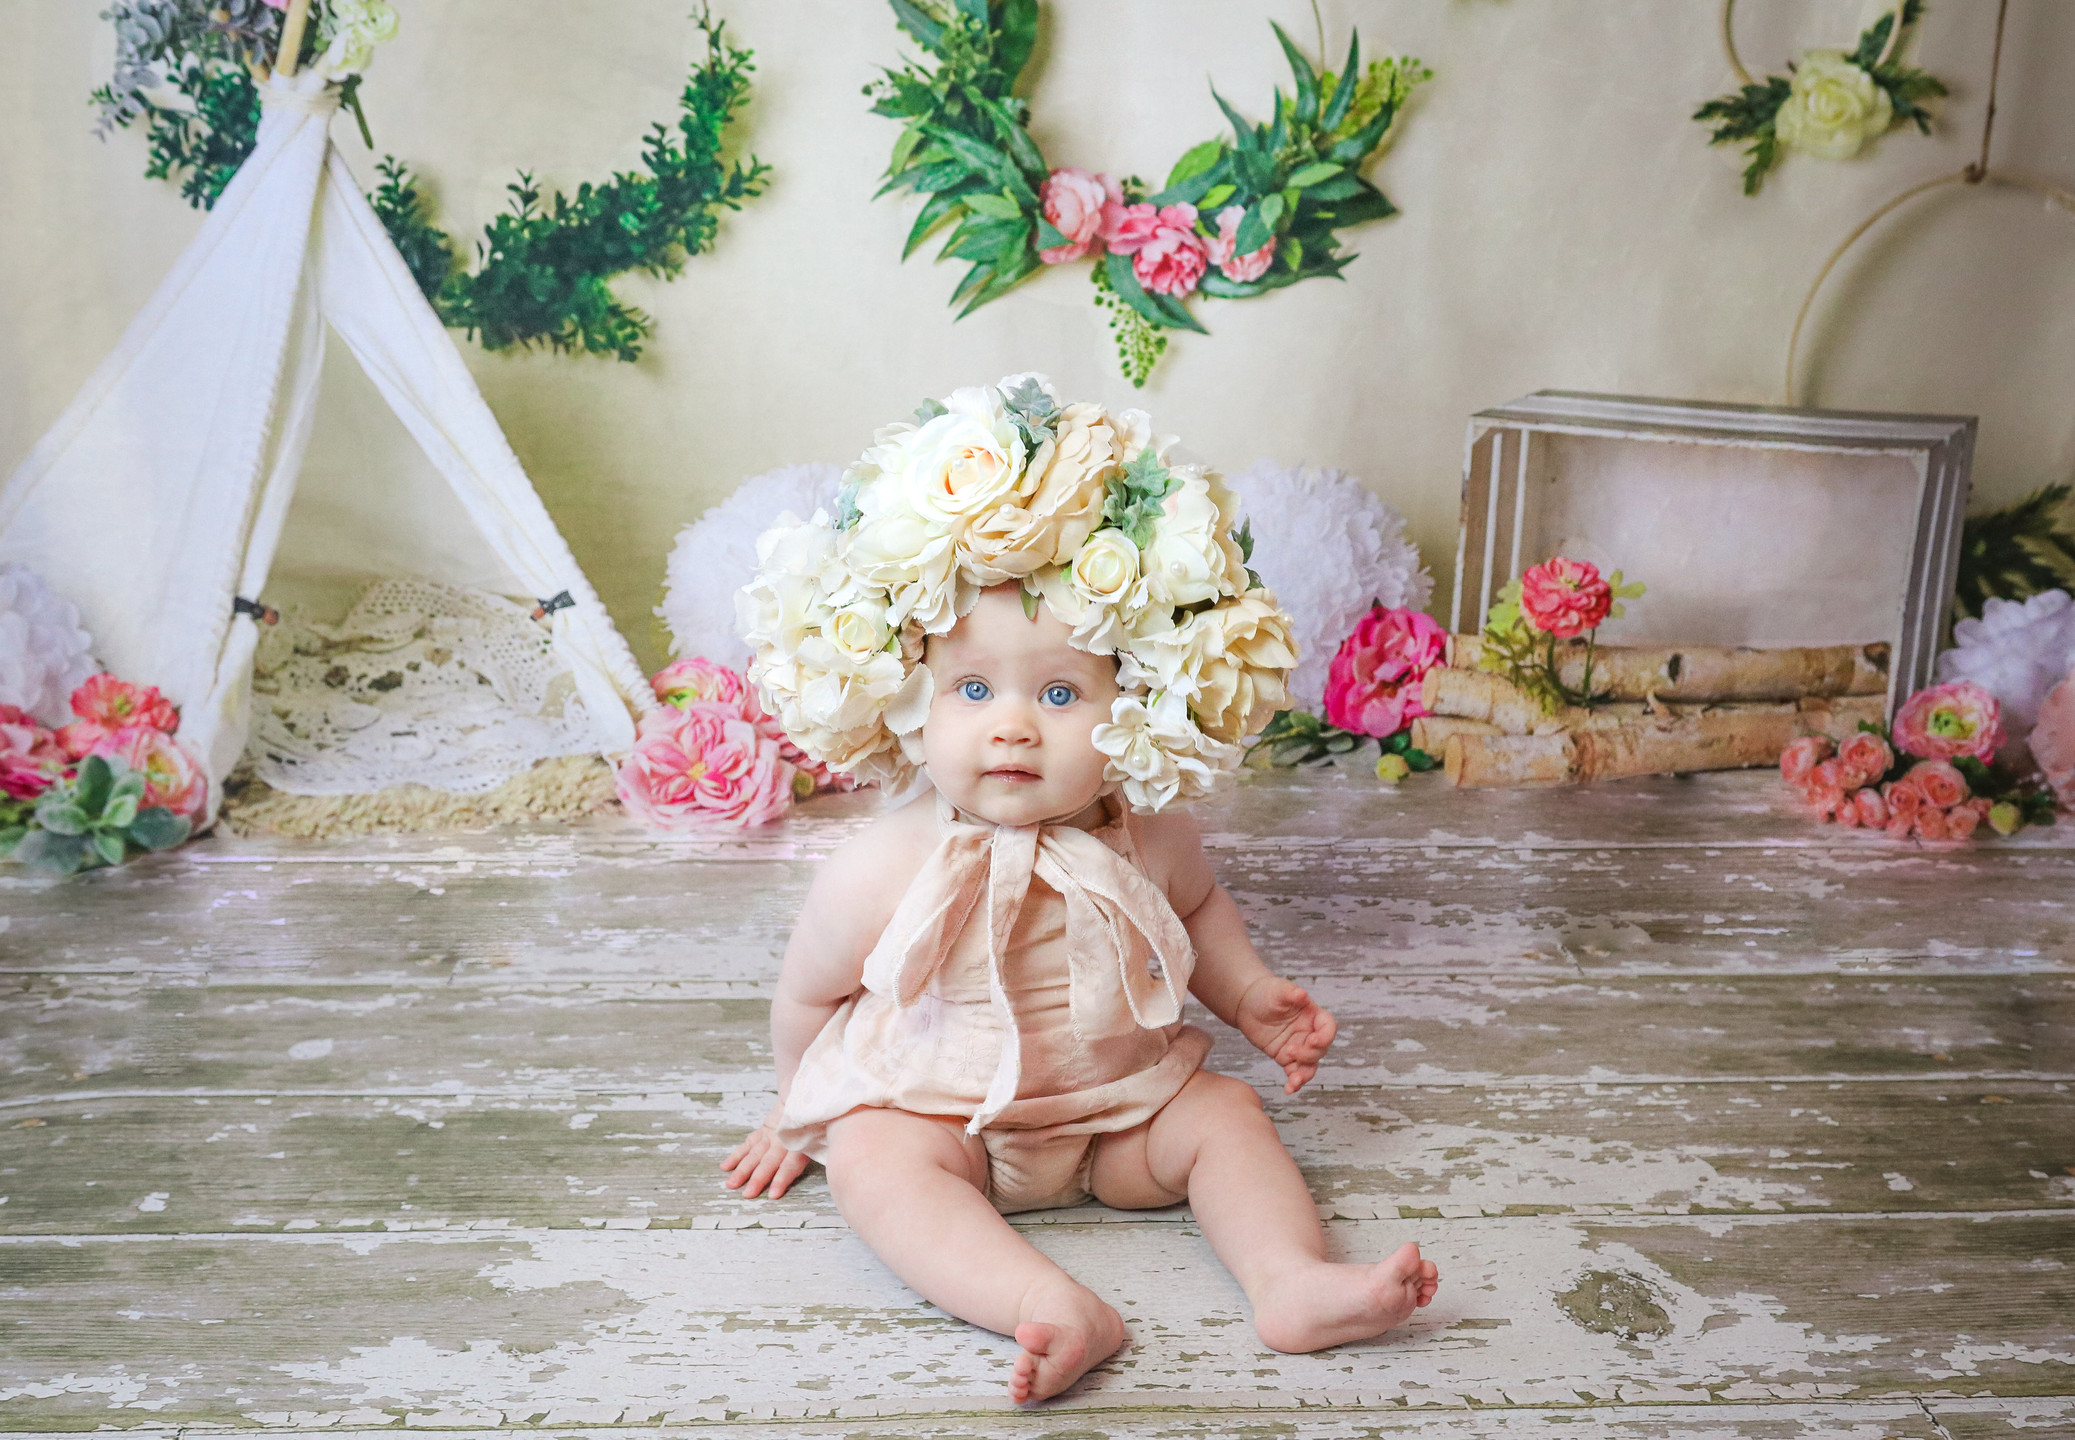 gorgeous baby girl wearing a large flower bonnet, sitting on wooden floor in front of a large white tent with flower wreaths on the wall